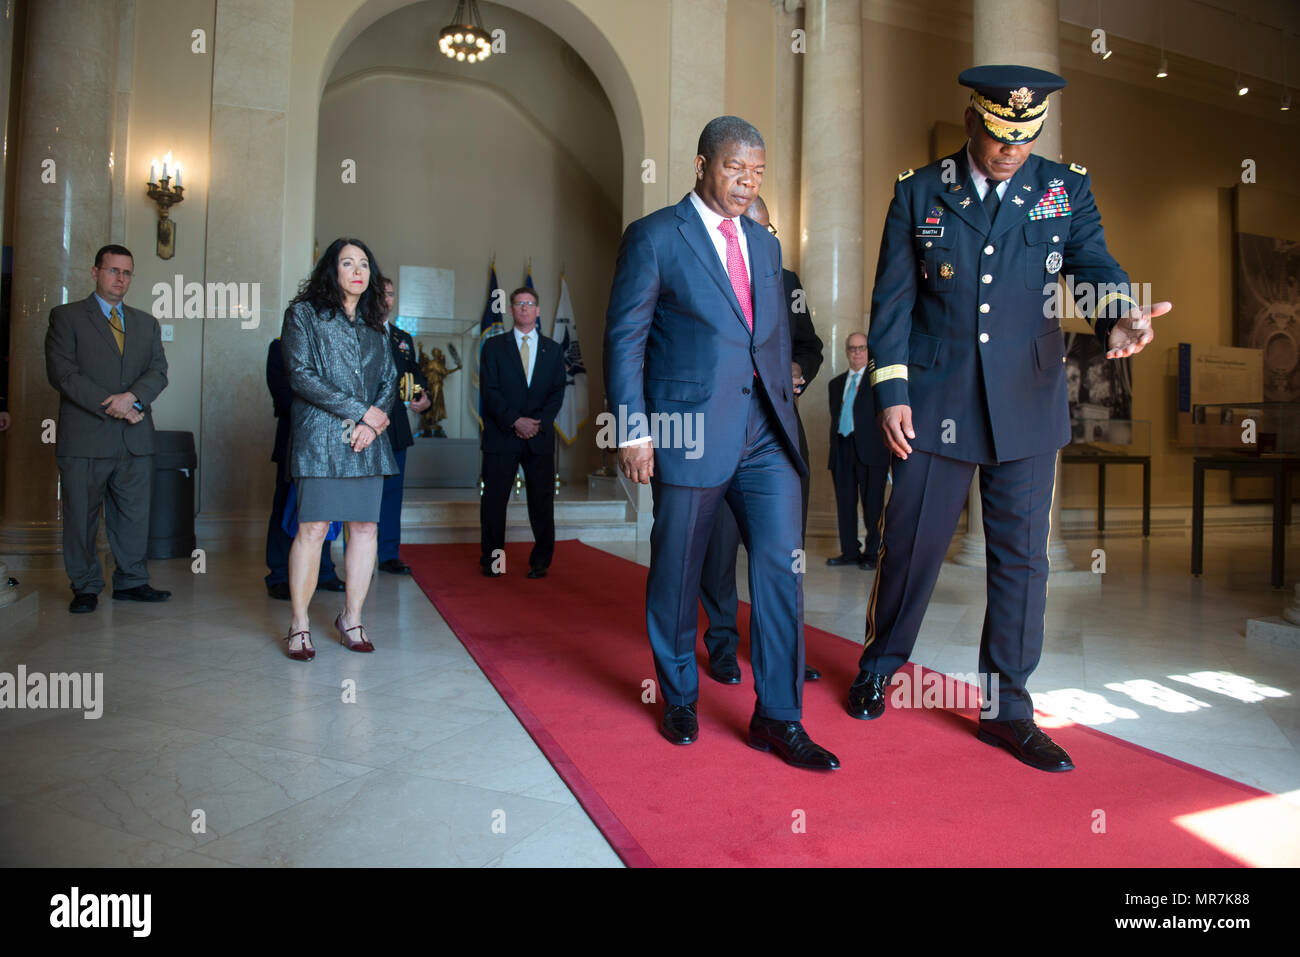 Leslie Smith Deputy To The Inspector General Office Of The Secretary Of The Army Escorts His Excellency Jo E1 Be B6o Lourenco Minster Of Defense Of Angola